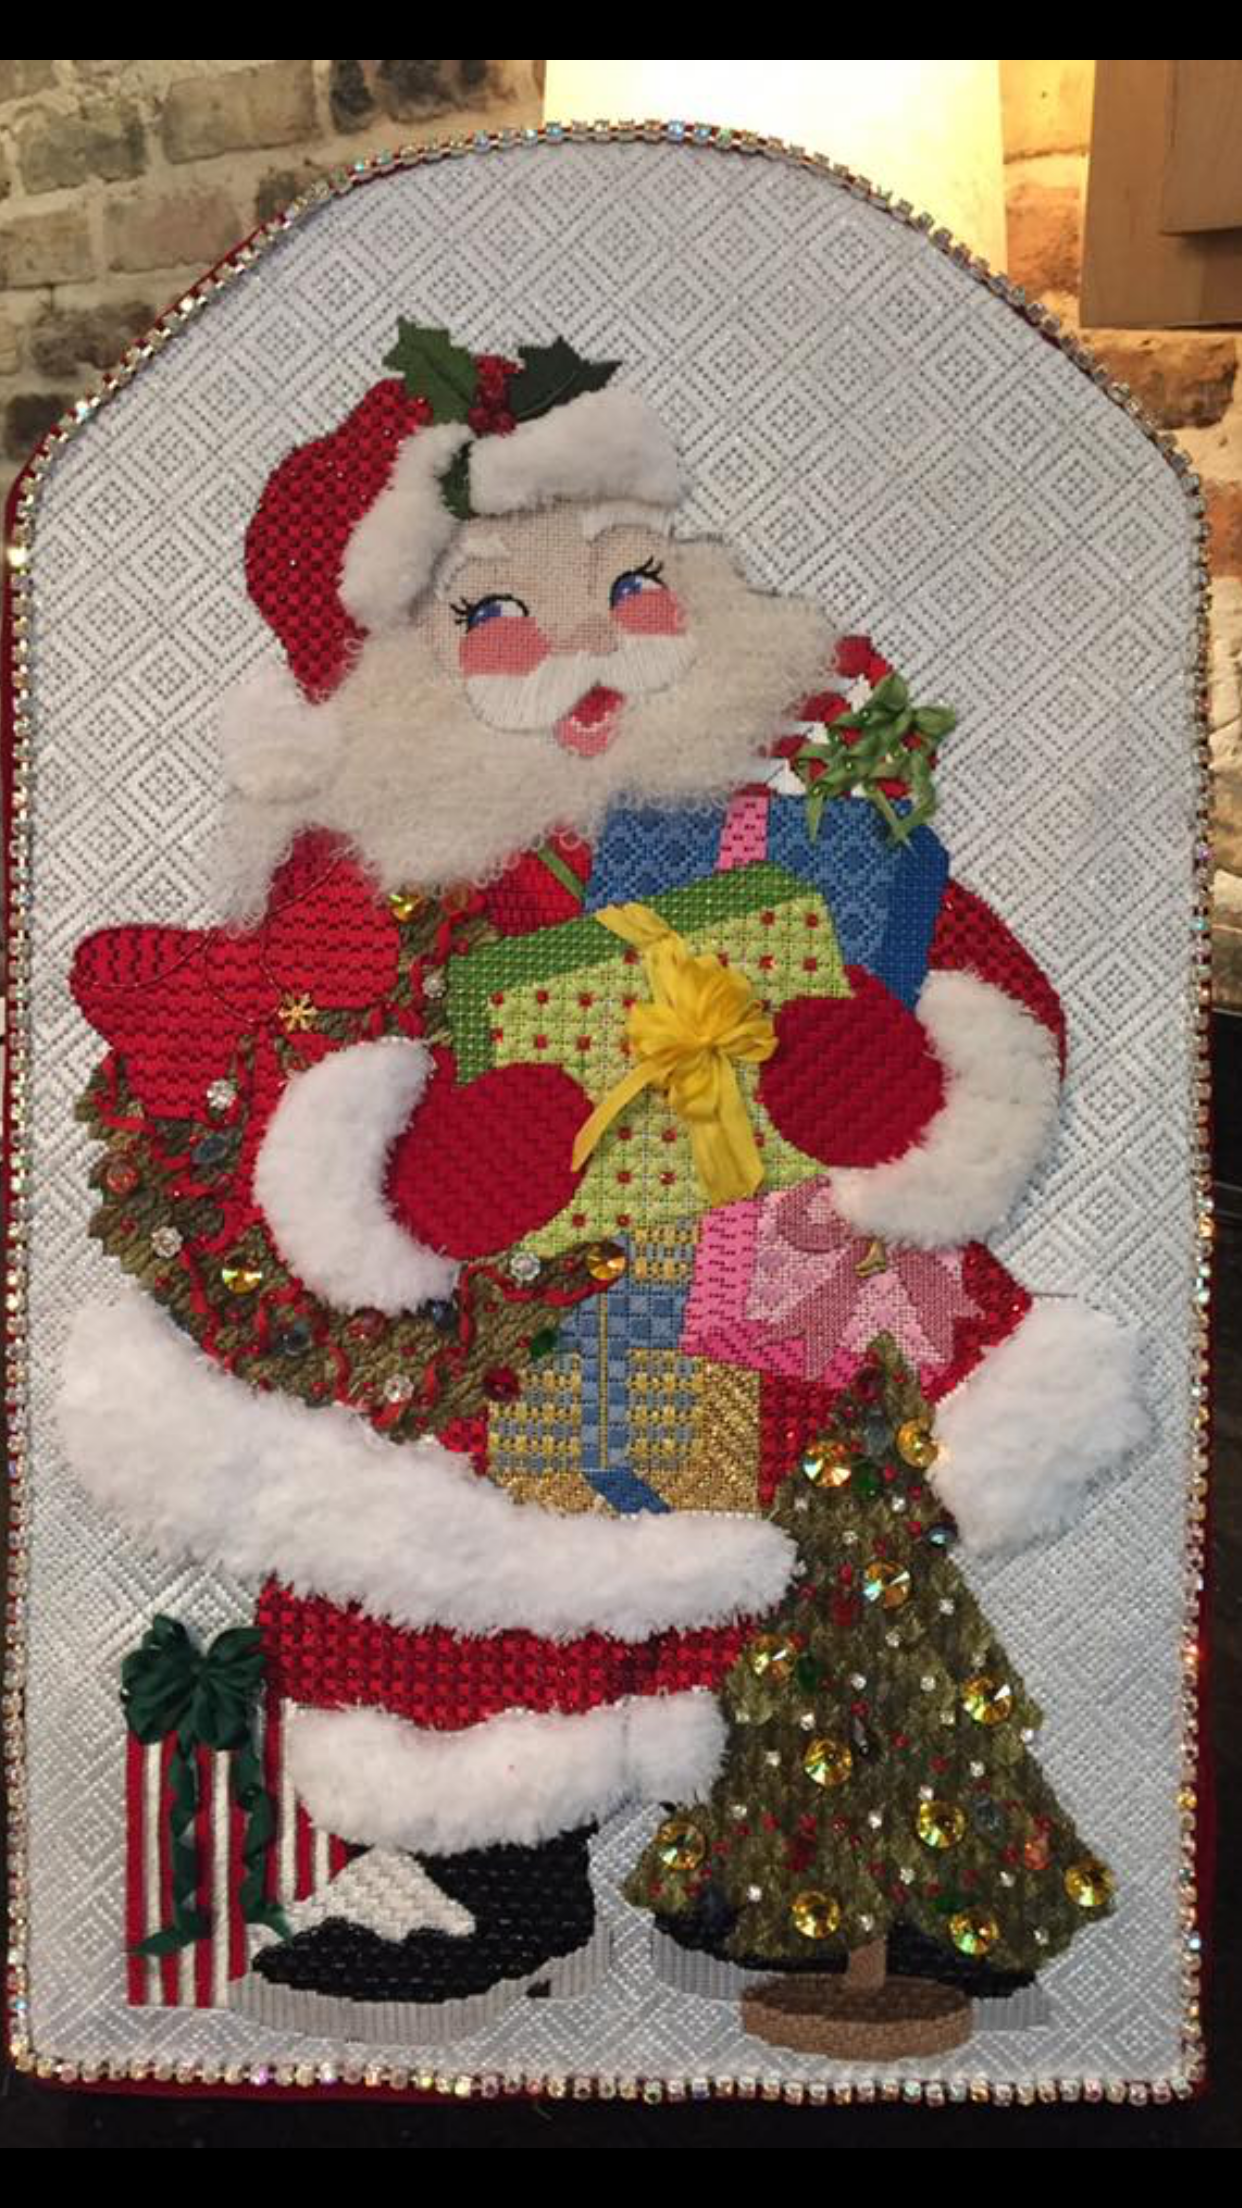 Pin by Suzie Opsahl on Needle Point Pinterest